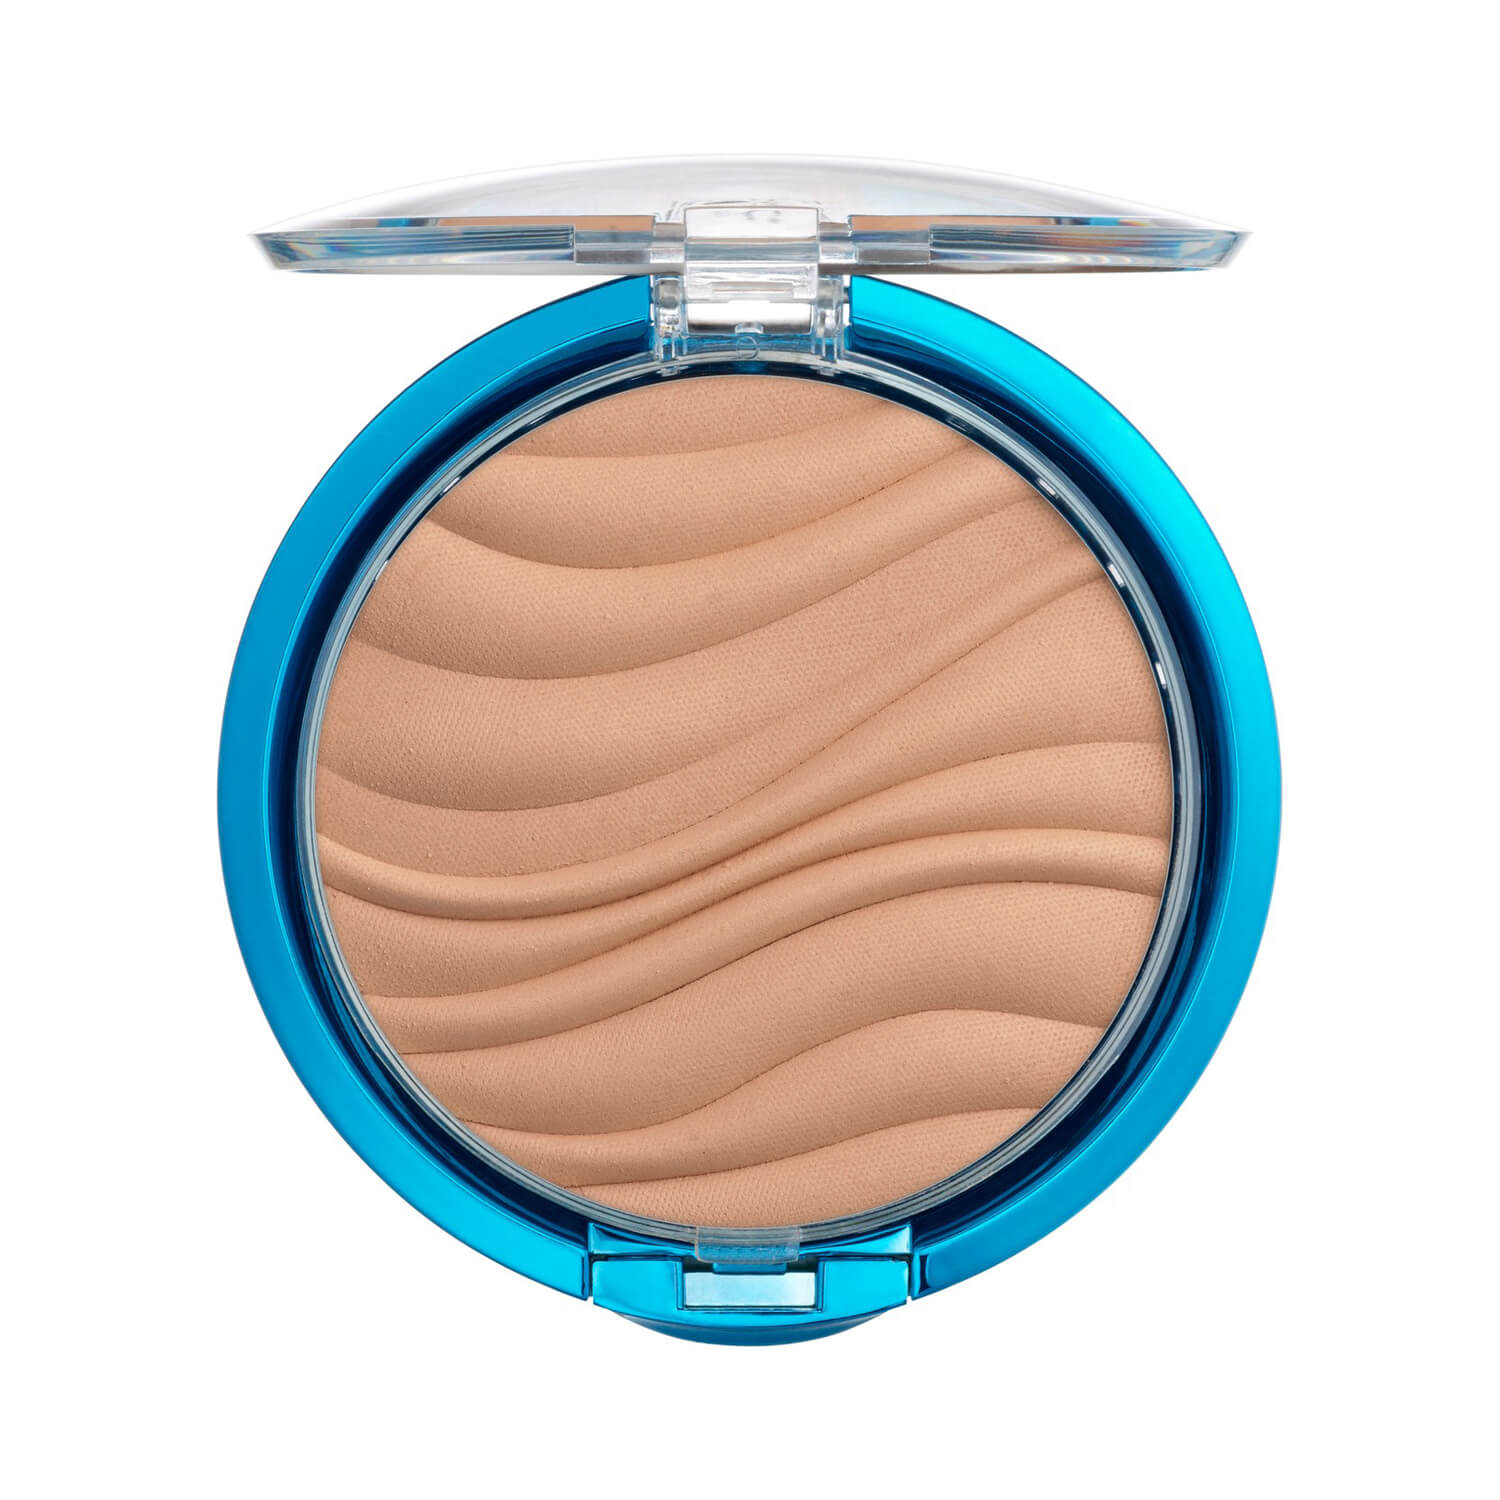 Physicians Formula Mineral Wear Talc-Free Mineral Airbrushing Pressed Powder SPF 30 Translucent